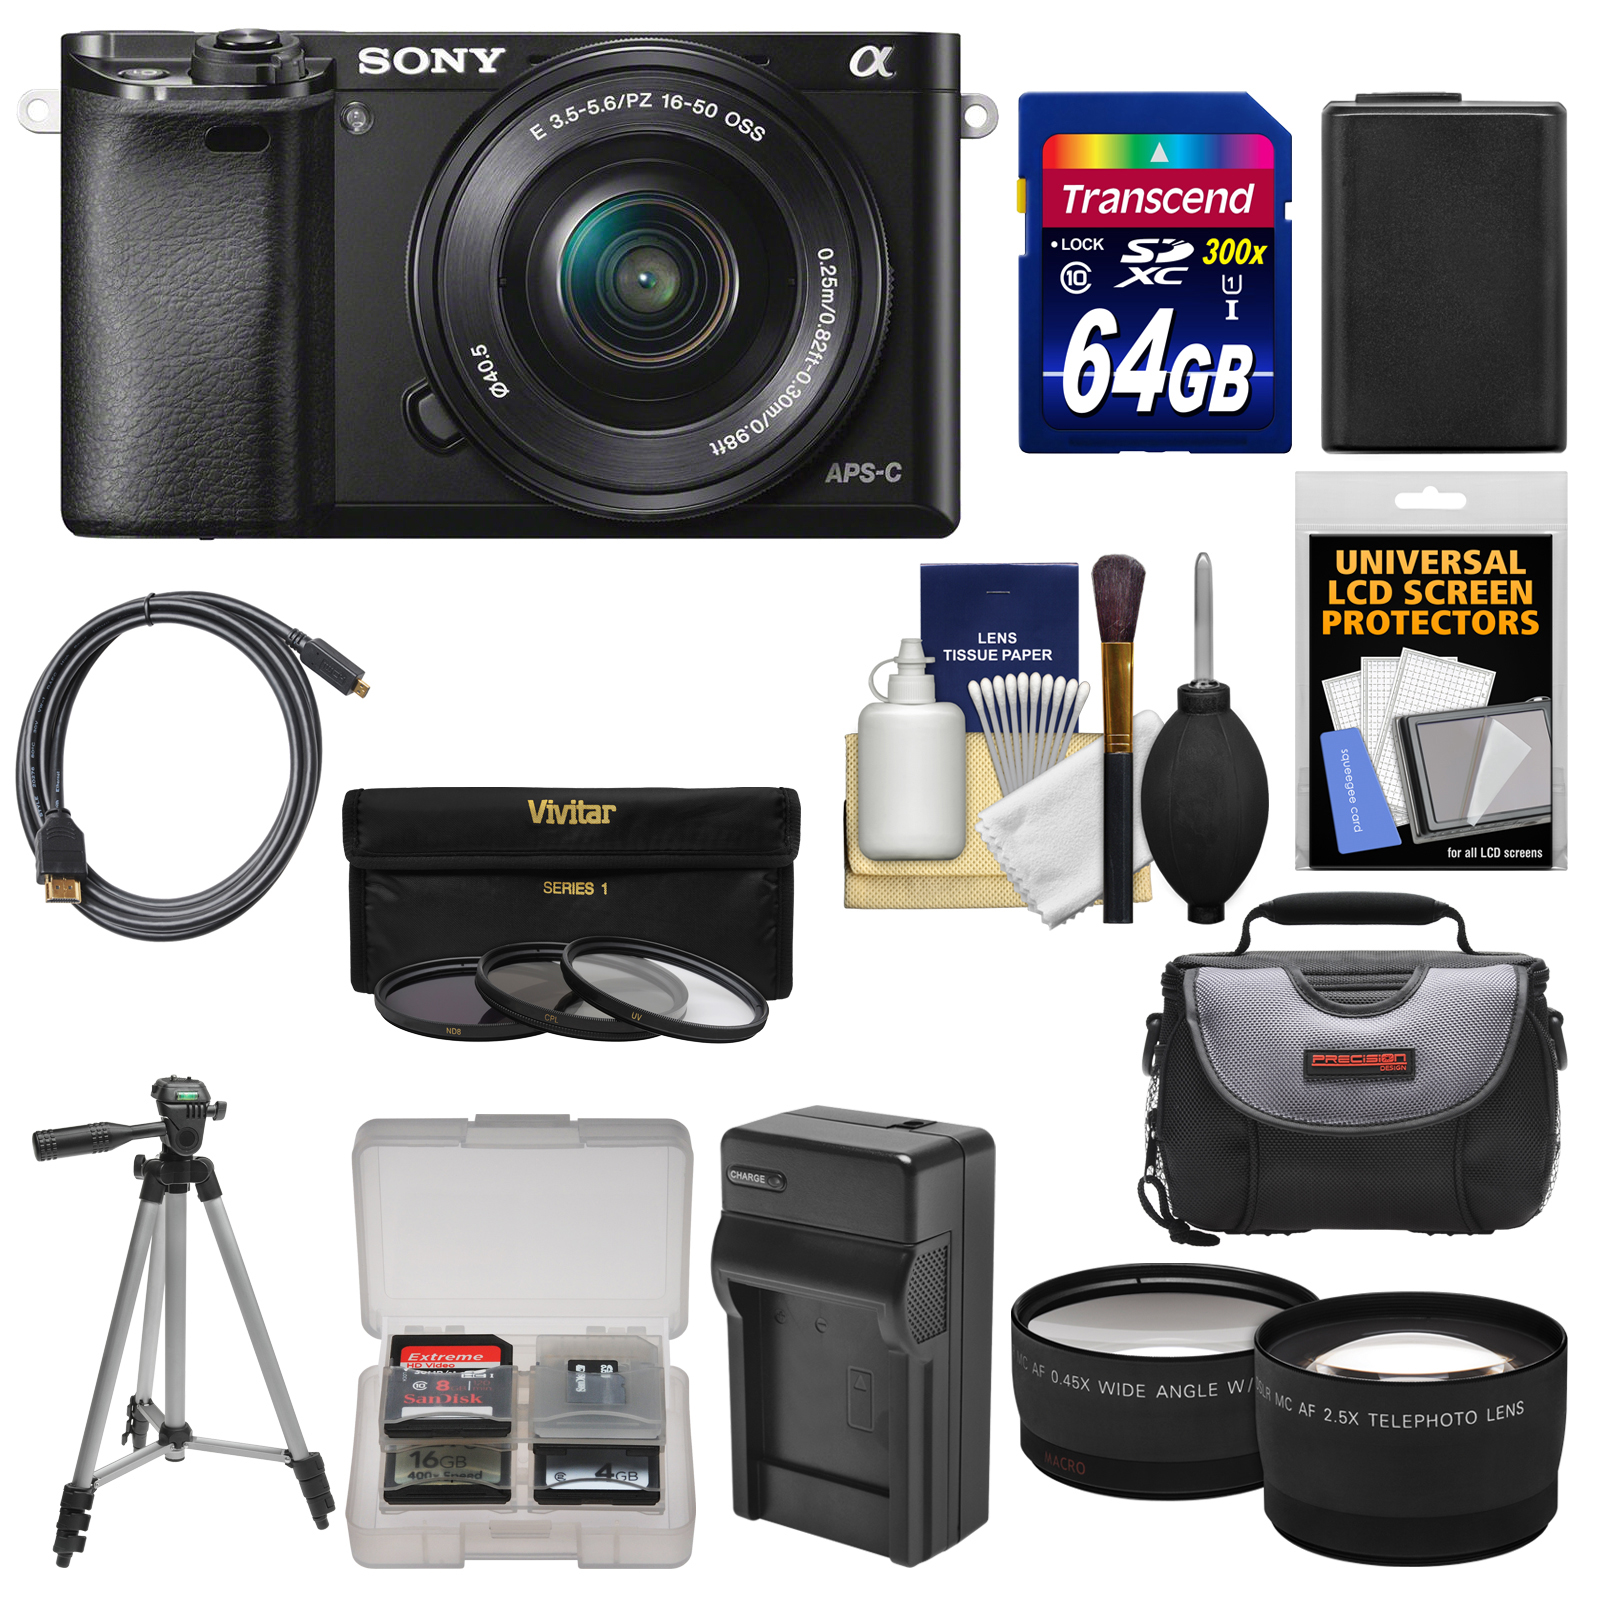 Sony Alpha A6000 Wi-Fi Digital Camera & 16-50mm Lens with 64GB Card + Case + Battery... by Sony